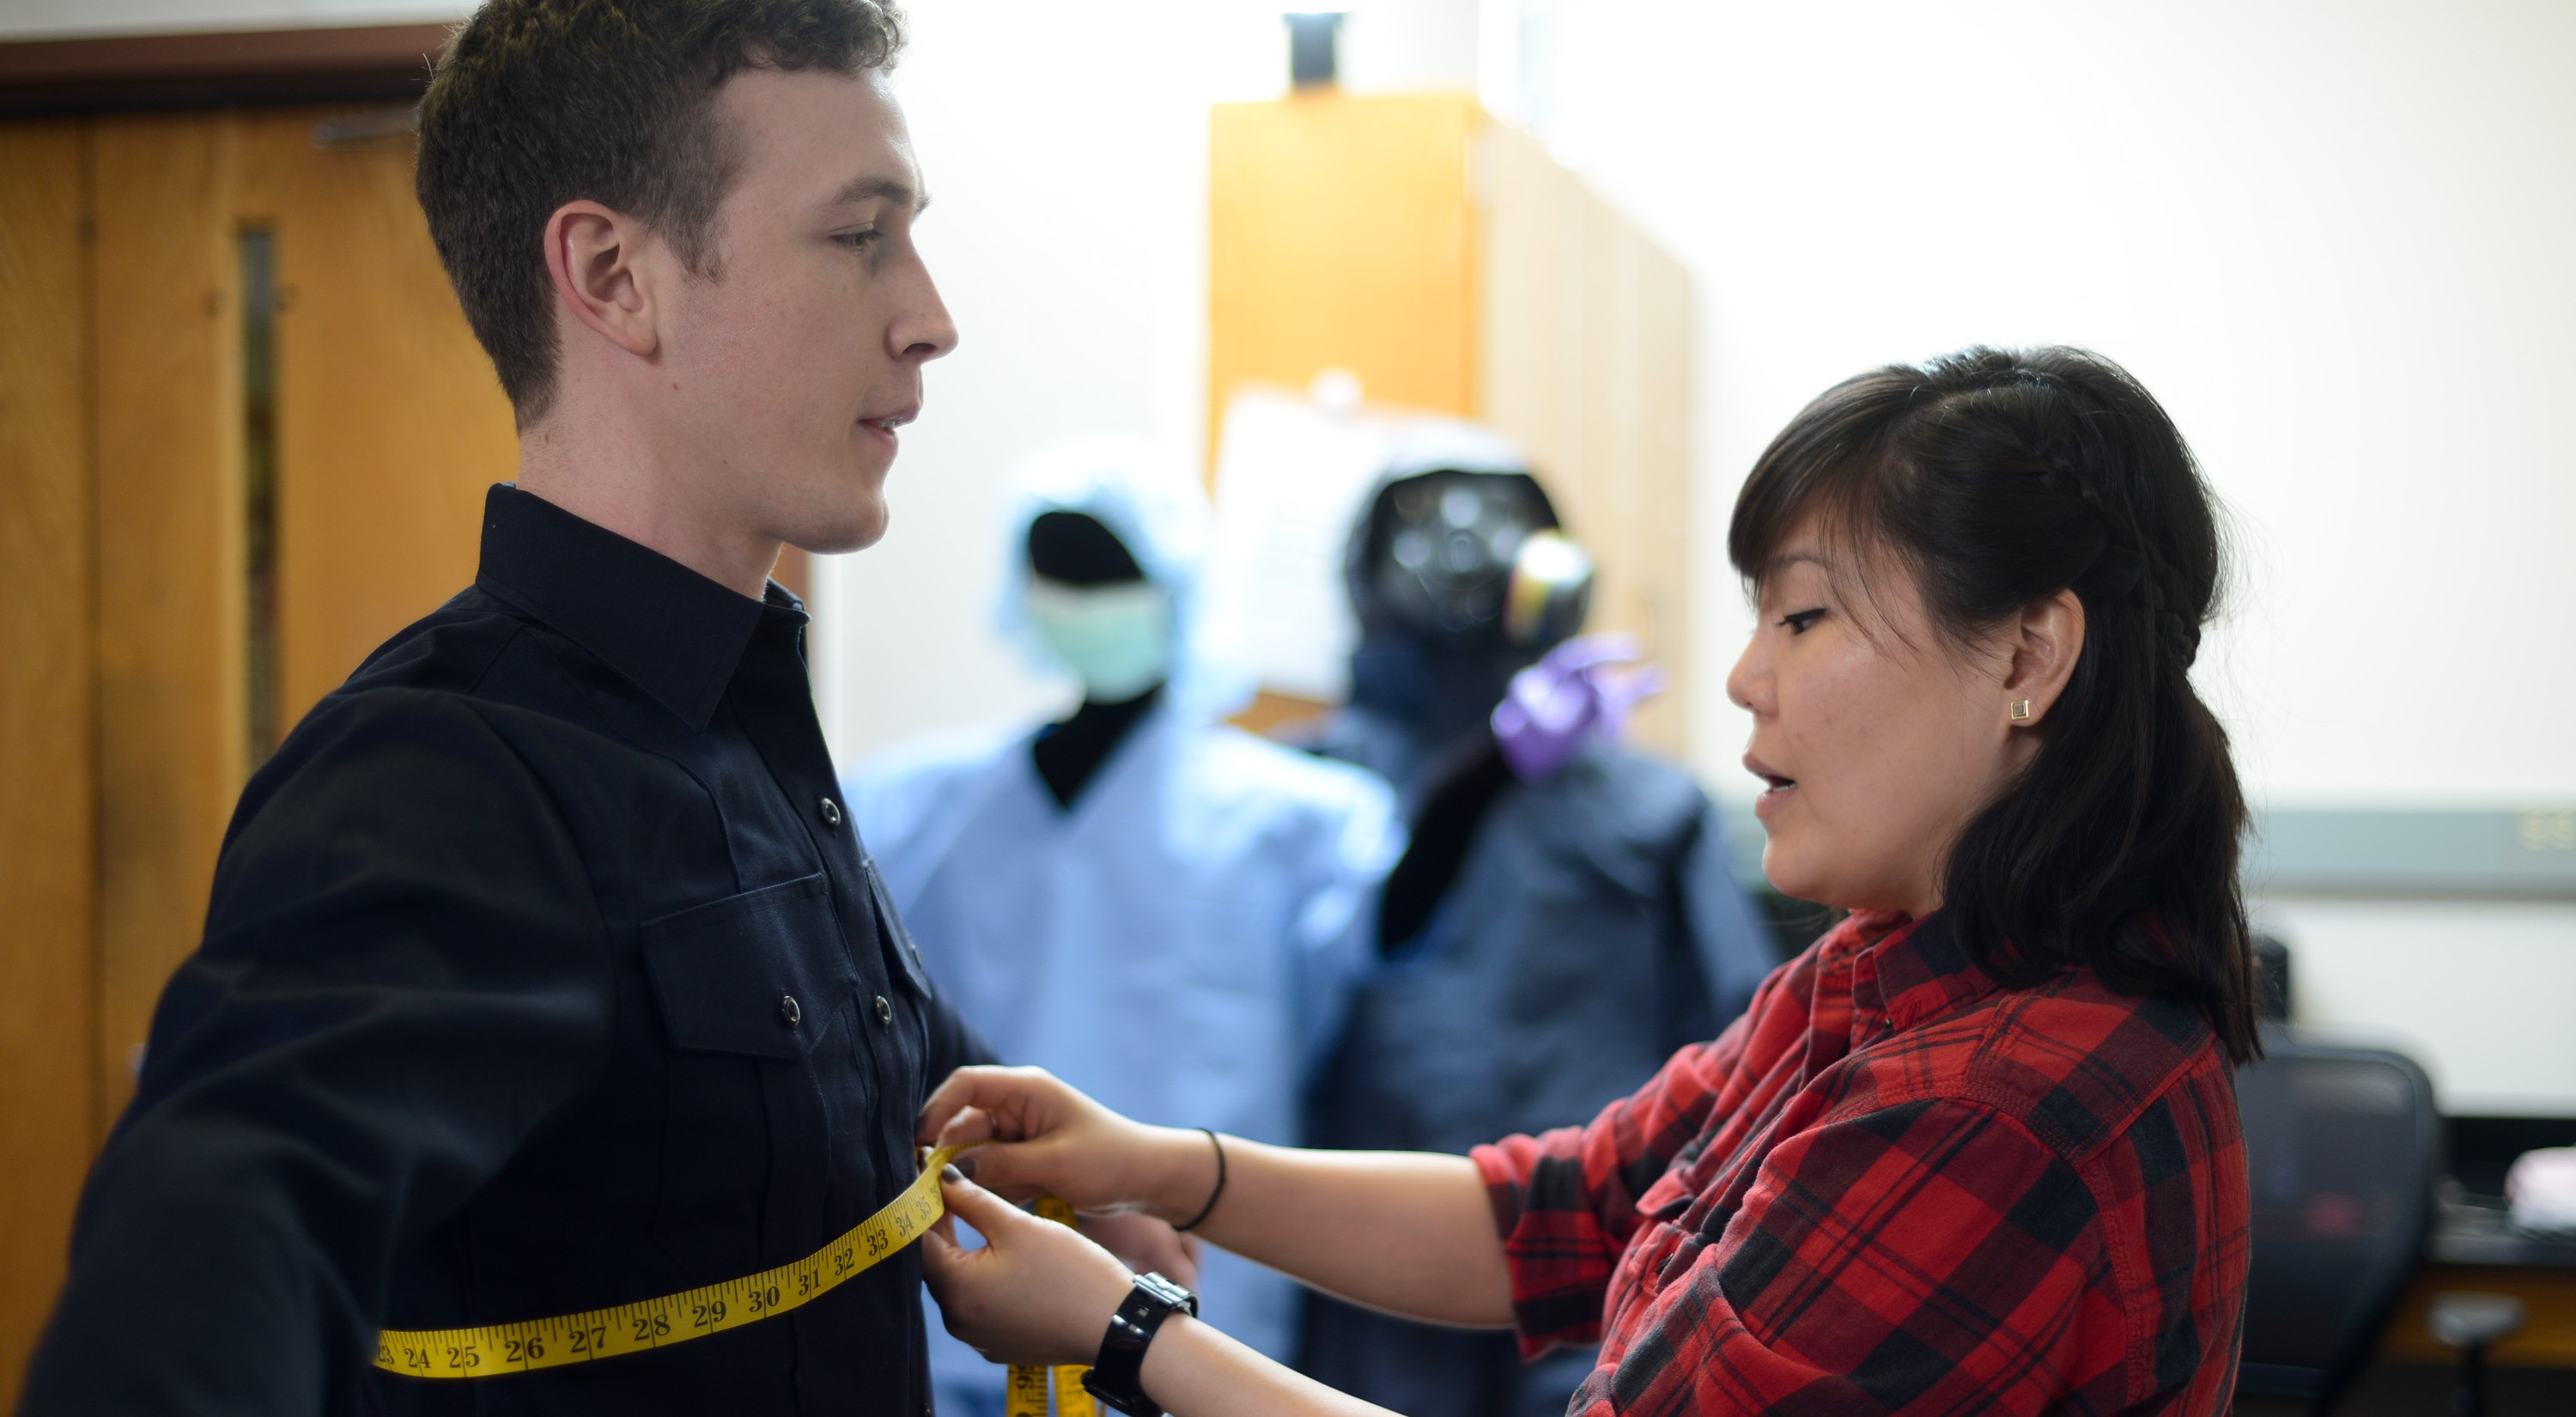 A male being fitted with a tape measure around his chest by a female